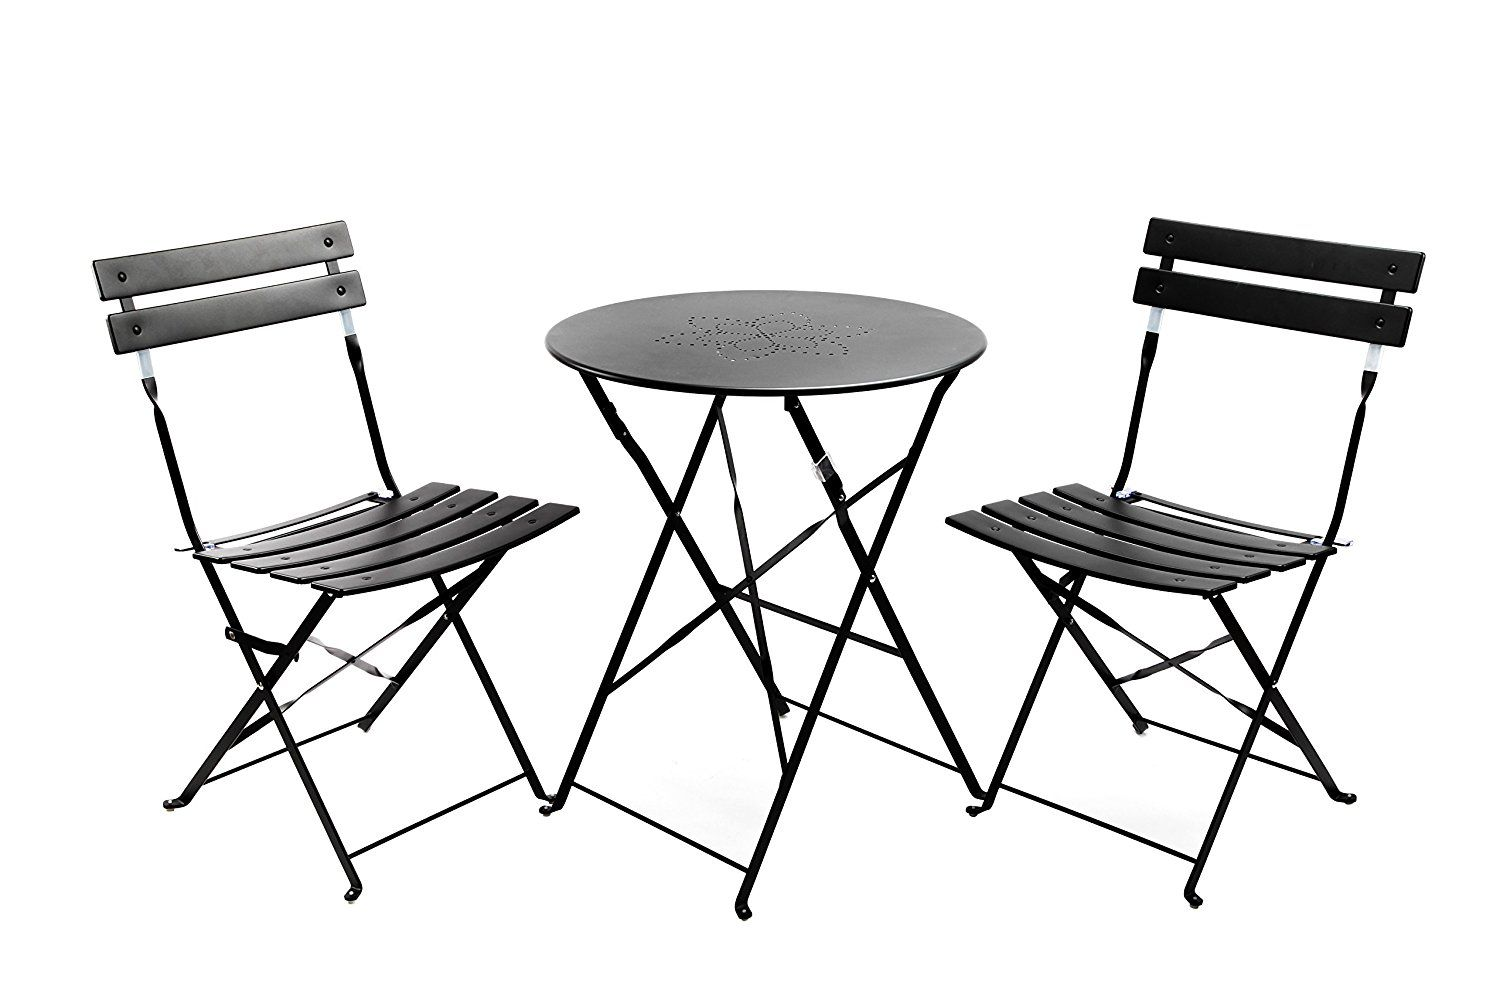 Amazon finnhomy slatted 3 piece outdoor patio furniture sets amazon finnhomy slatted 3 piece outdoor patio furniture sets bistro sets steel folding table and chair set with safe lock for indoors and outdoors watchthetrailerfo